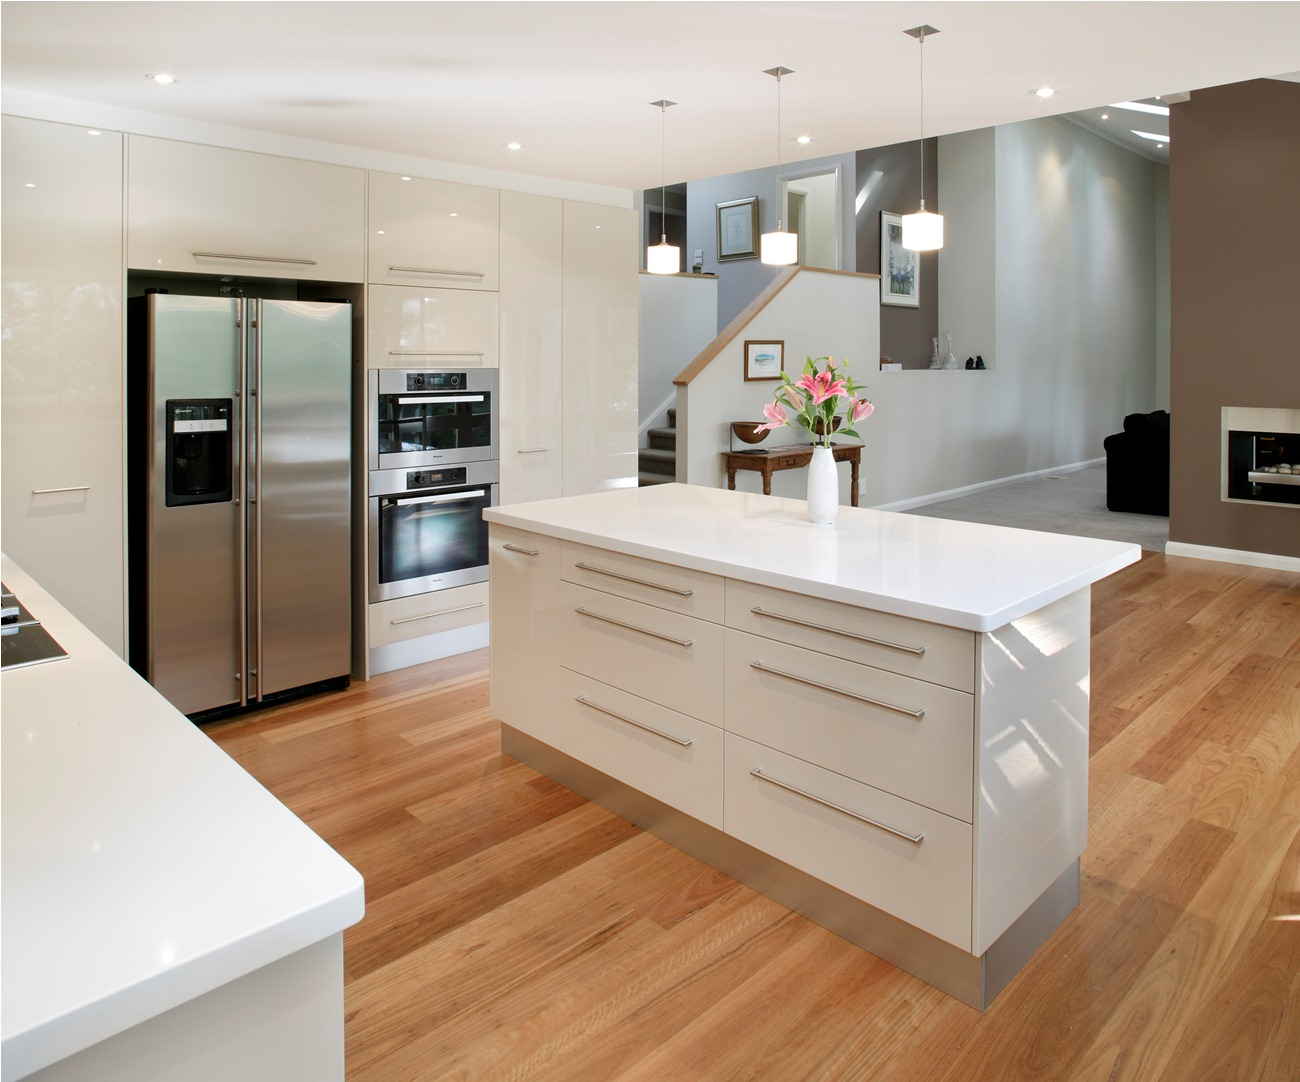 Kitchen Interior Idea photo - 9